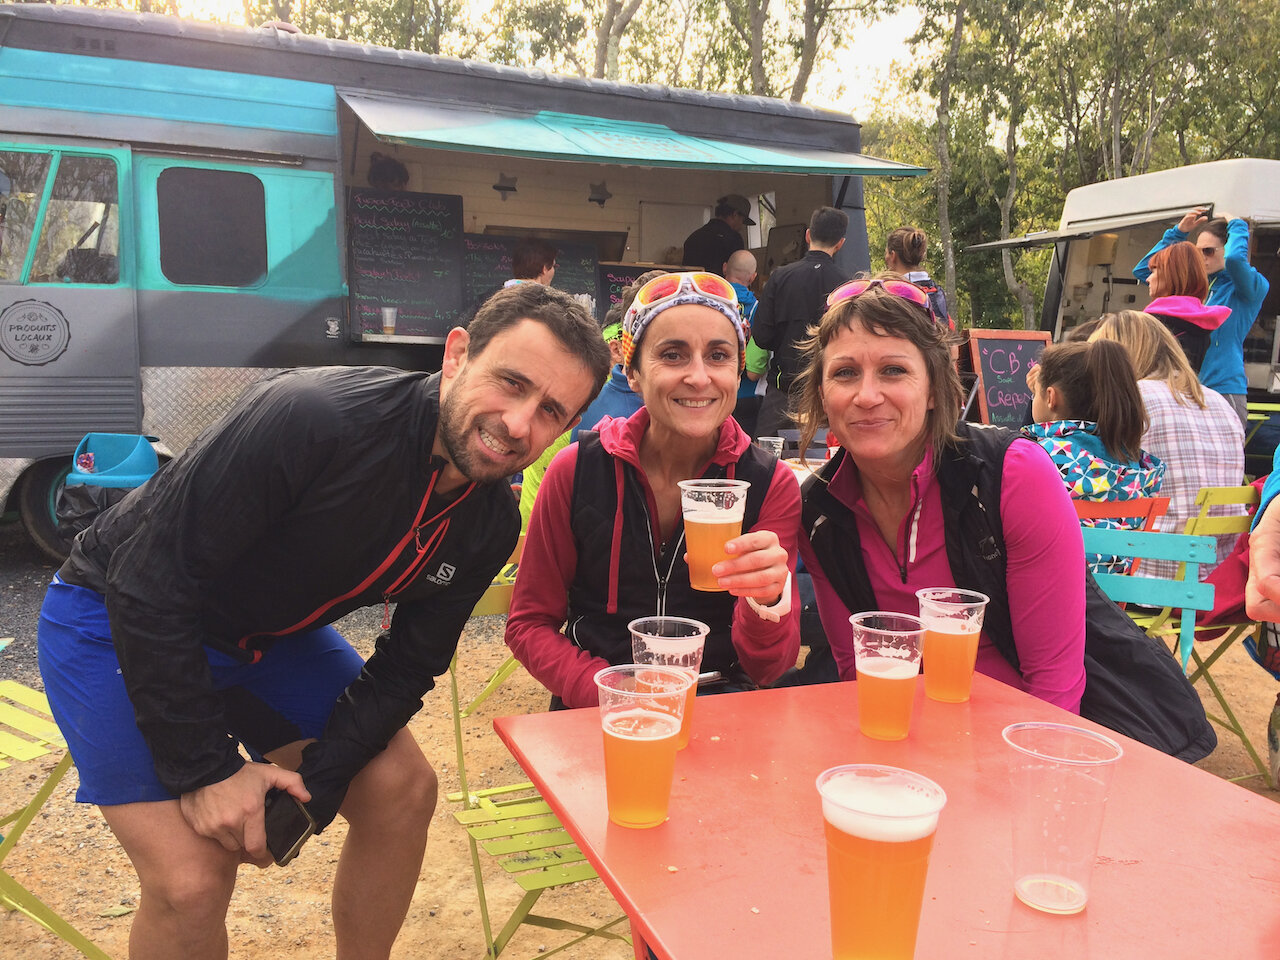 Friends from running…engaging in questionable hydration strategies!